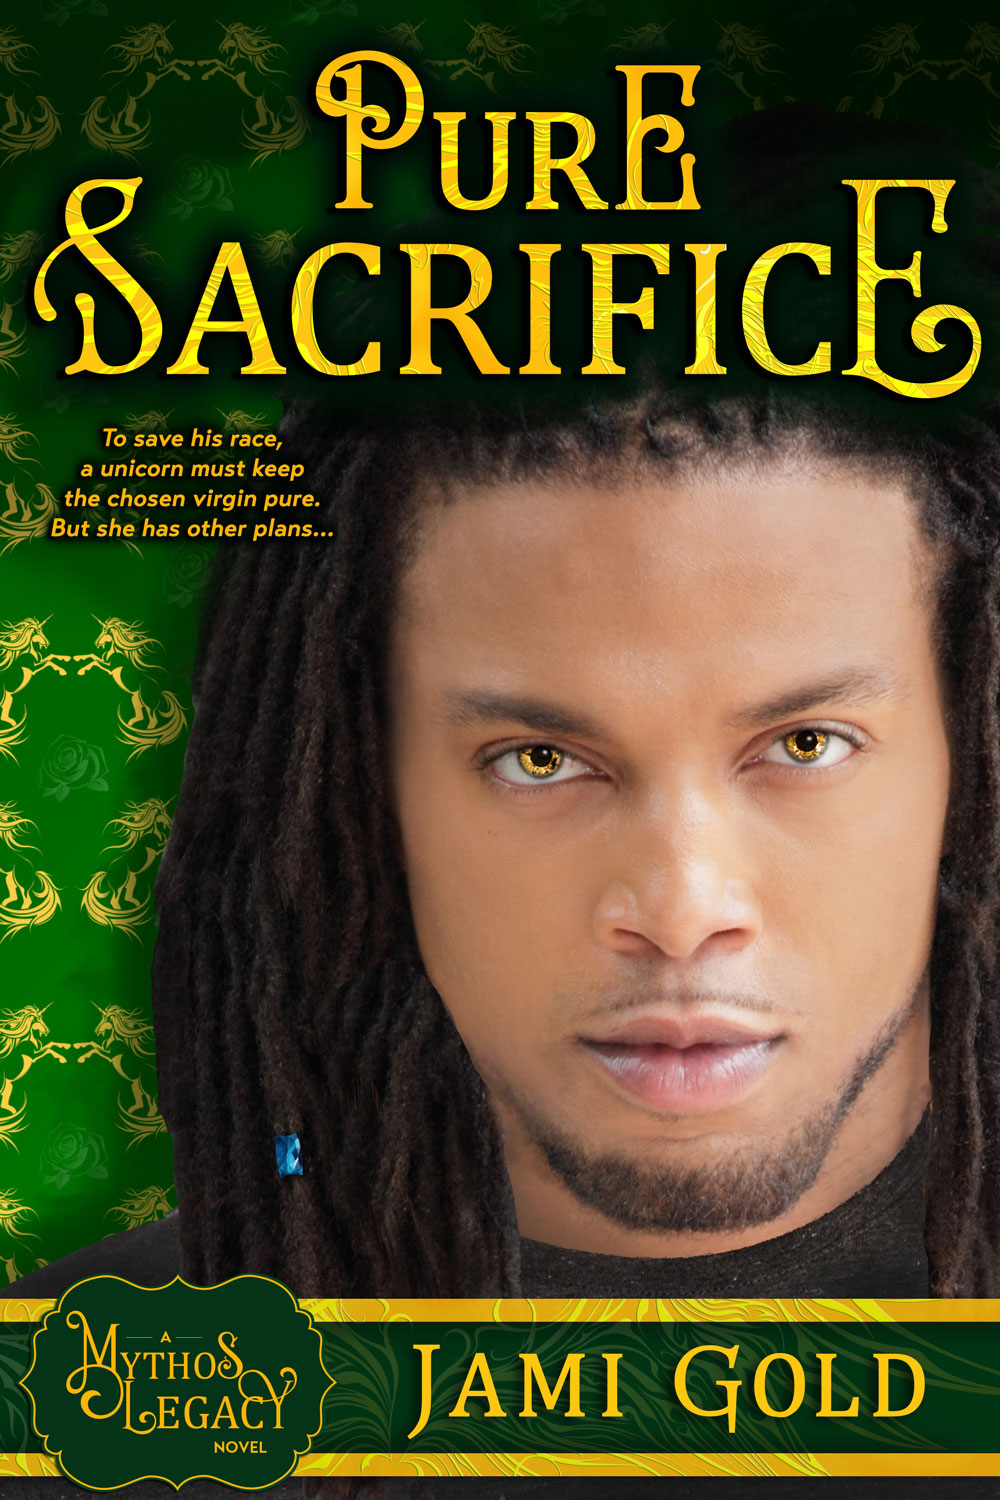 Pure Sacrifice Book Cover: Sexy dreadlocked black man with striking gold eyes, one blue bead in hair, and a goatee stares at viewer against green background of rearing unicorn and rose outline graphics